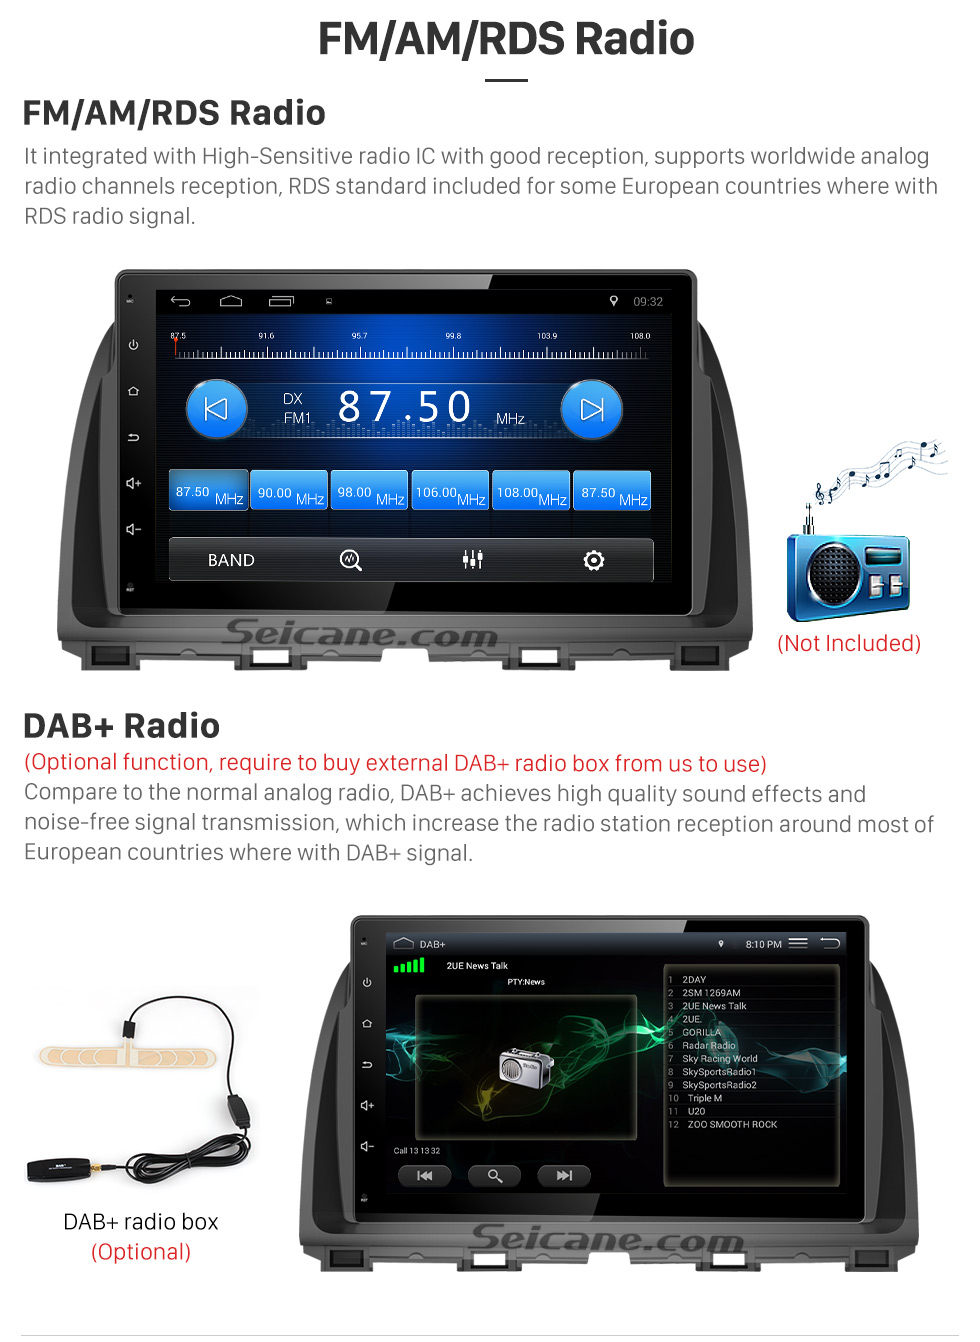 FM/AM/RDS Radio 10.1 inch 2016 Peugeot 308 Android 6.0 Radio GPS Navigation system Support Canbus Bluetooth Music USB 1080P Video 3G WIFI OBD2 Mirror Link Rearview